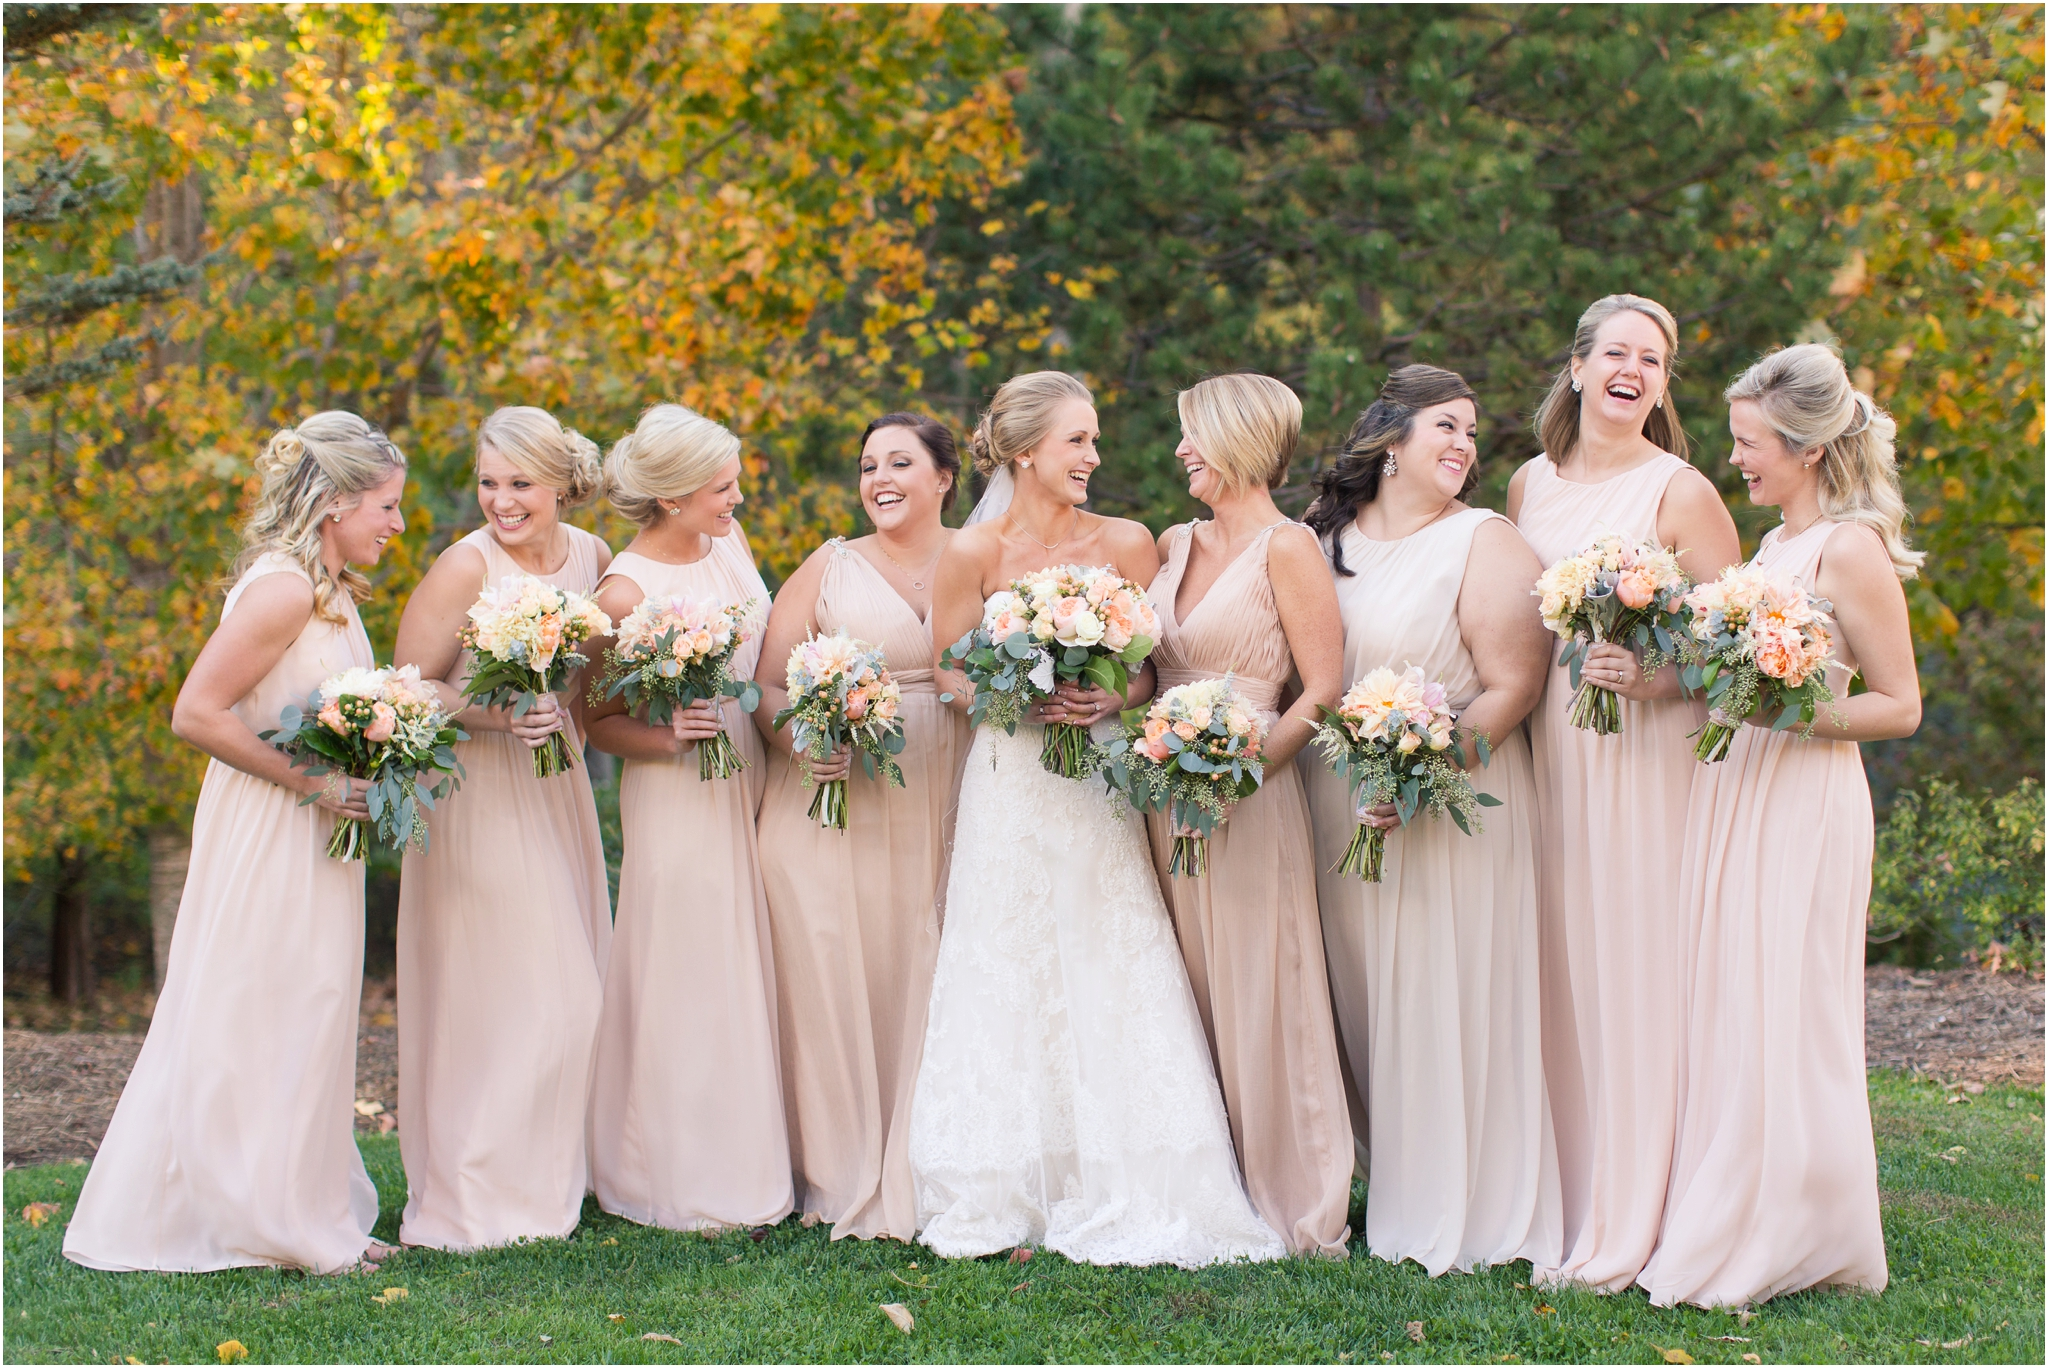 Blush Pink And Champagne Bridesmaid Dresses